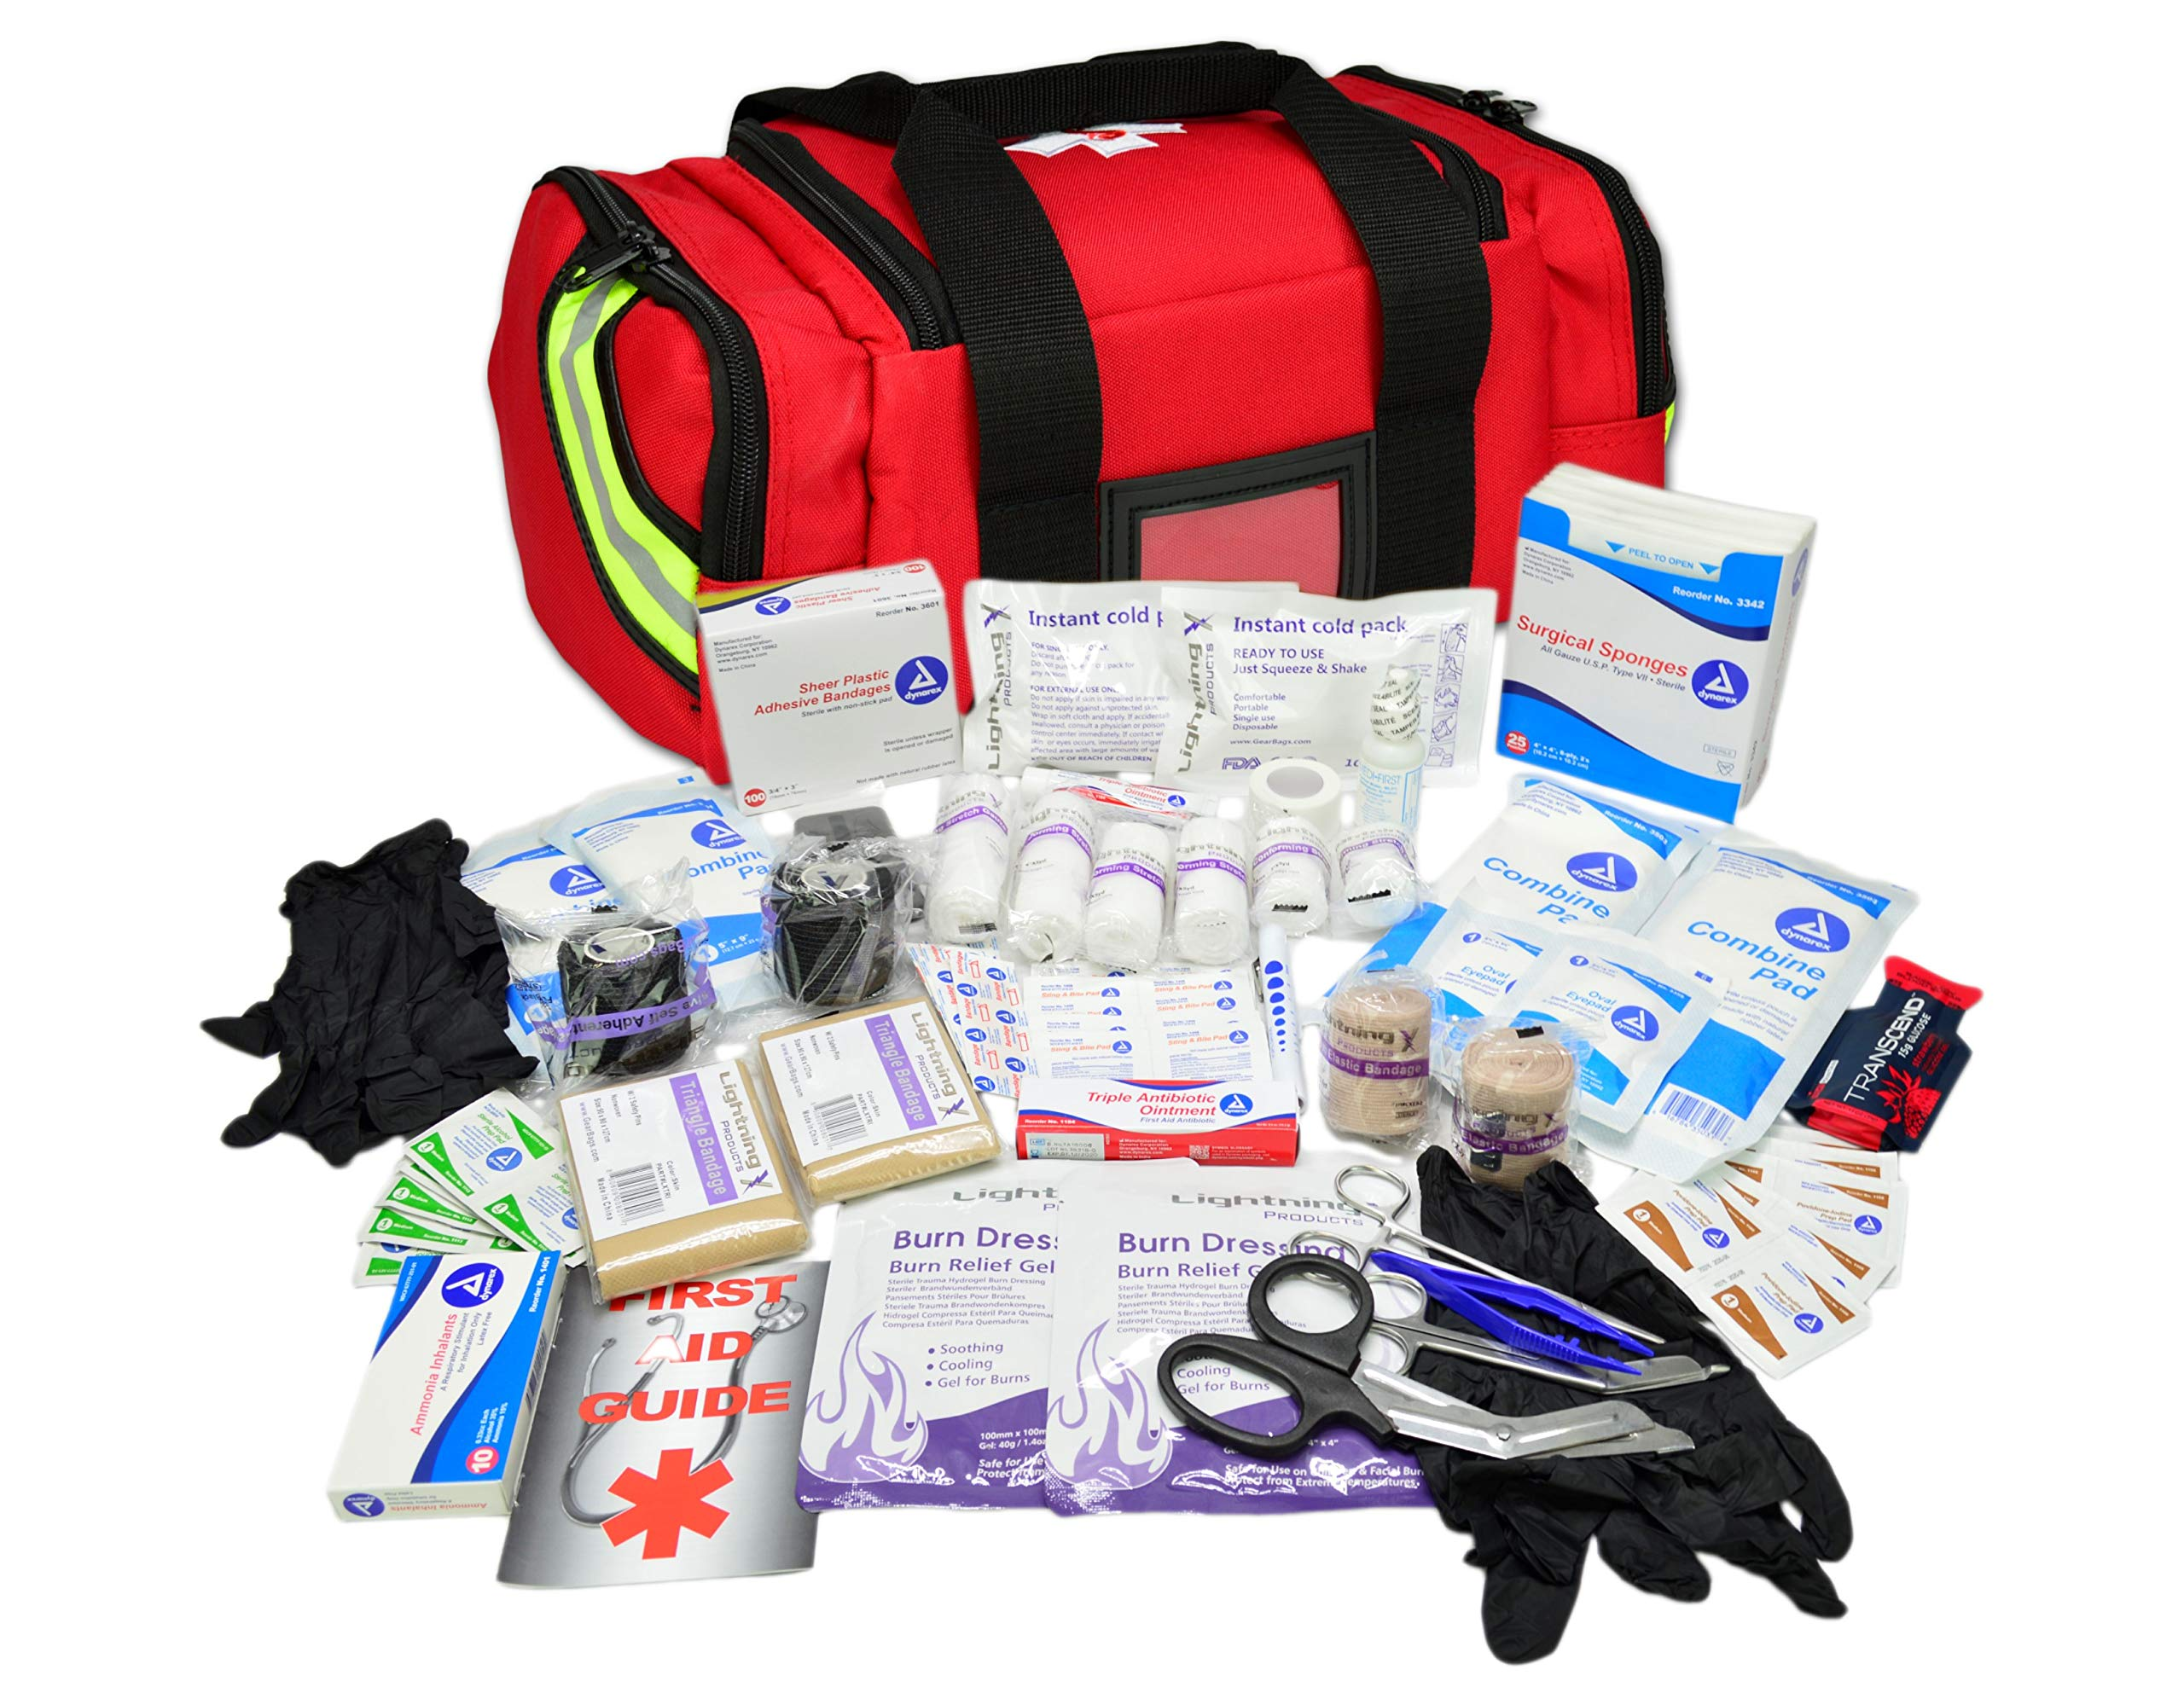 Lightning X Value Compact Medic First Responder EMS/EMT Stocked Trauma Bag w/Basic Fill Kit A - RED by Lightning X Products